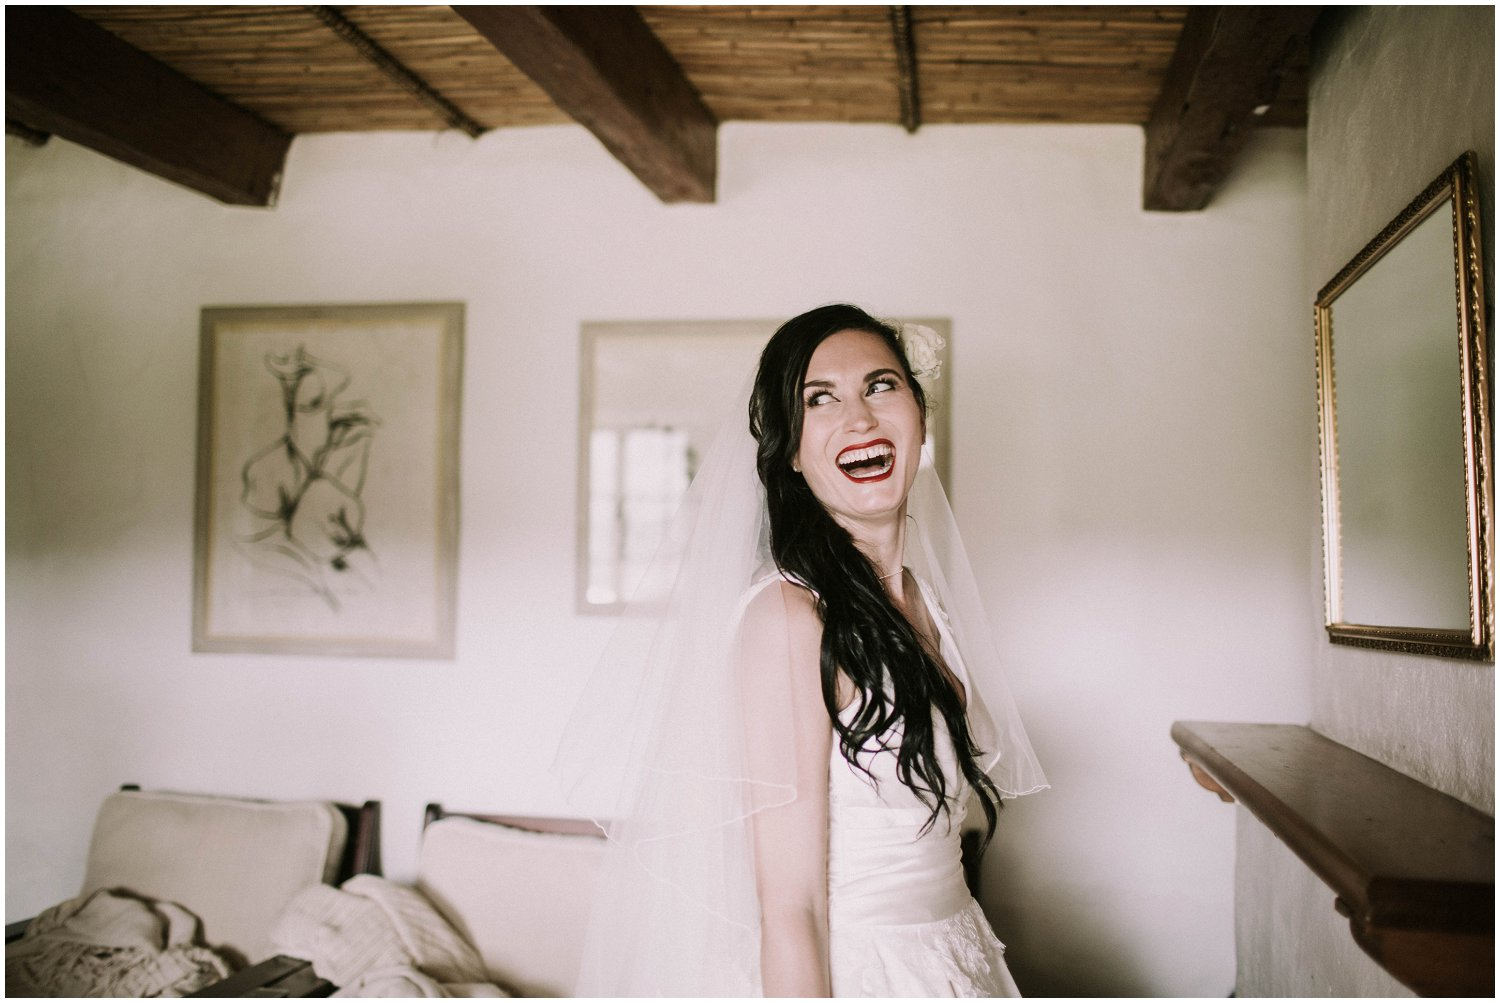 Top Wedding Photographer Cape Town South Africa Artistic Creative Documentary Wedding Photography Rue Kruger_0845.jpg